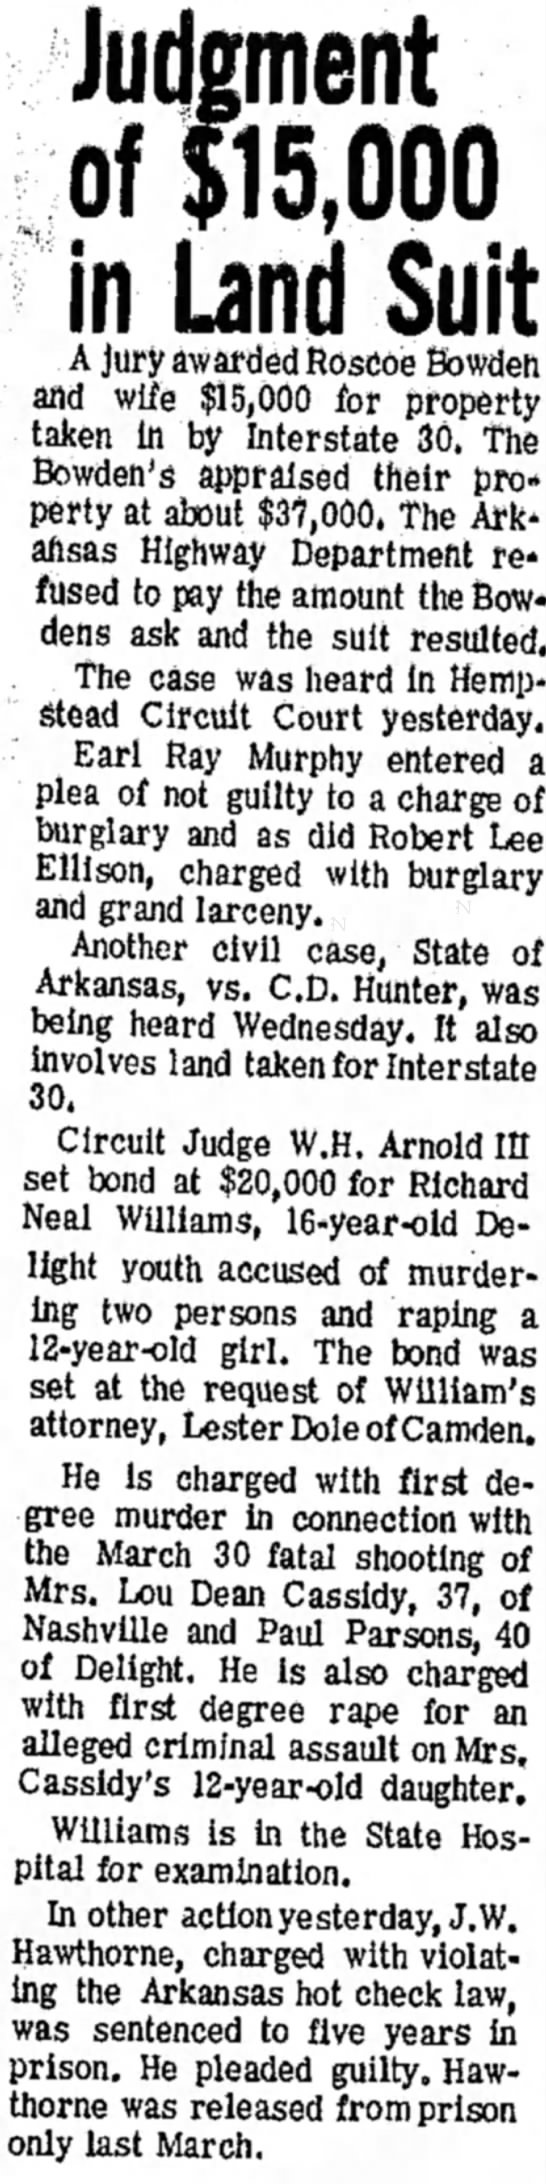 22 Apr 1970 p8, J  W  Hawthorne prison sent - Judgment of $15,000 in Land Suit A jury awarded...